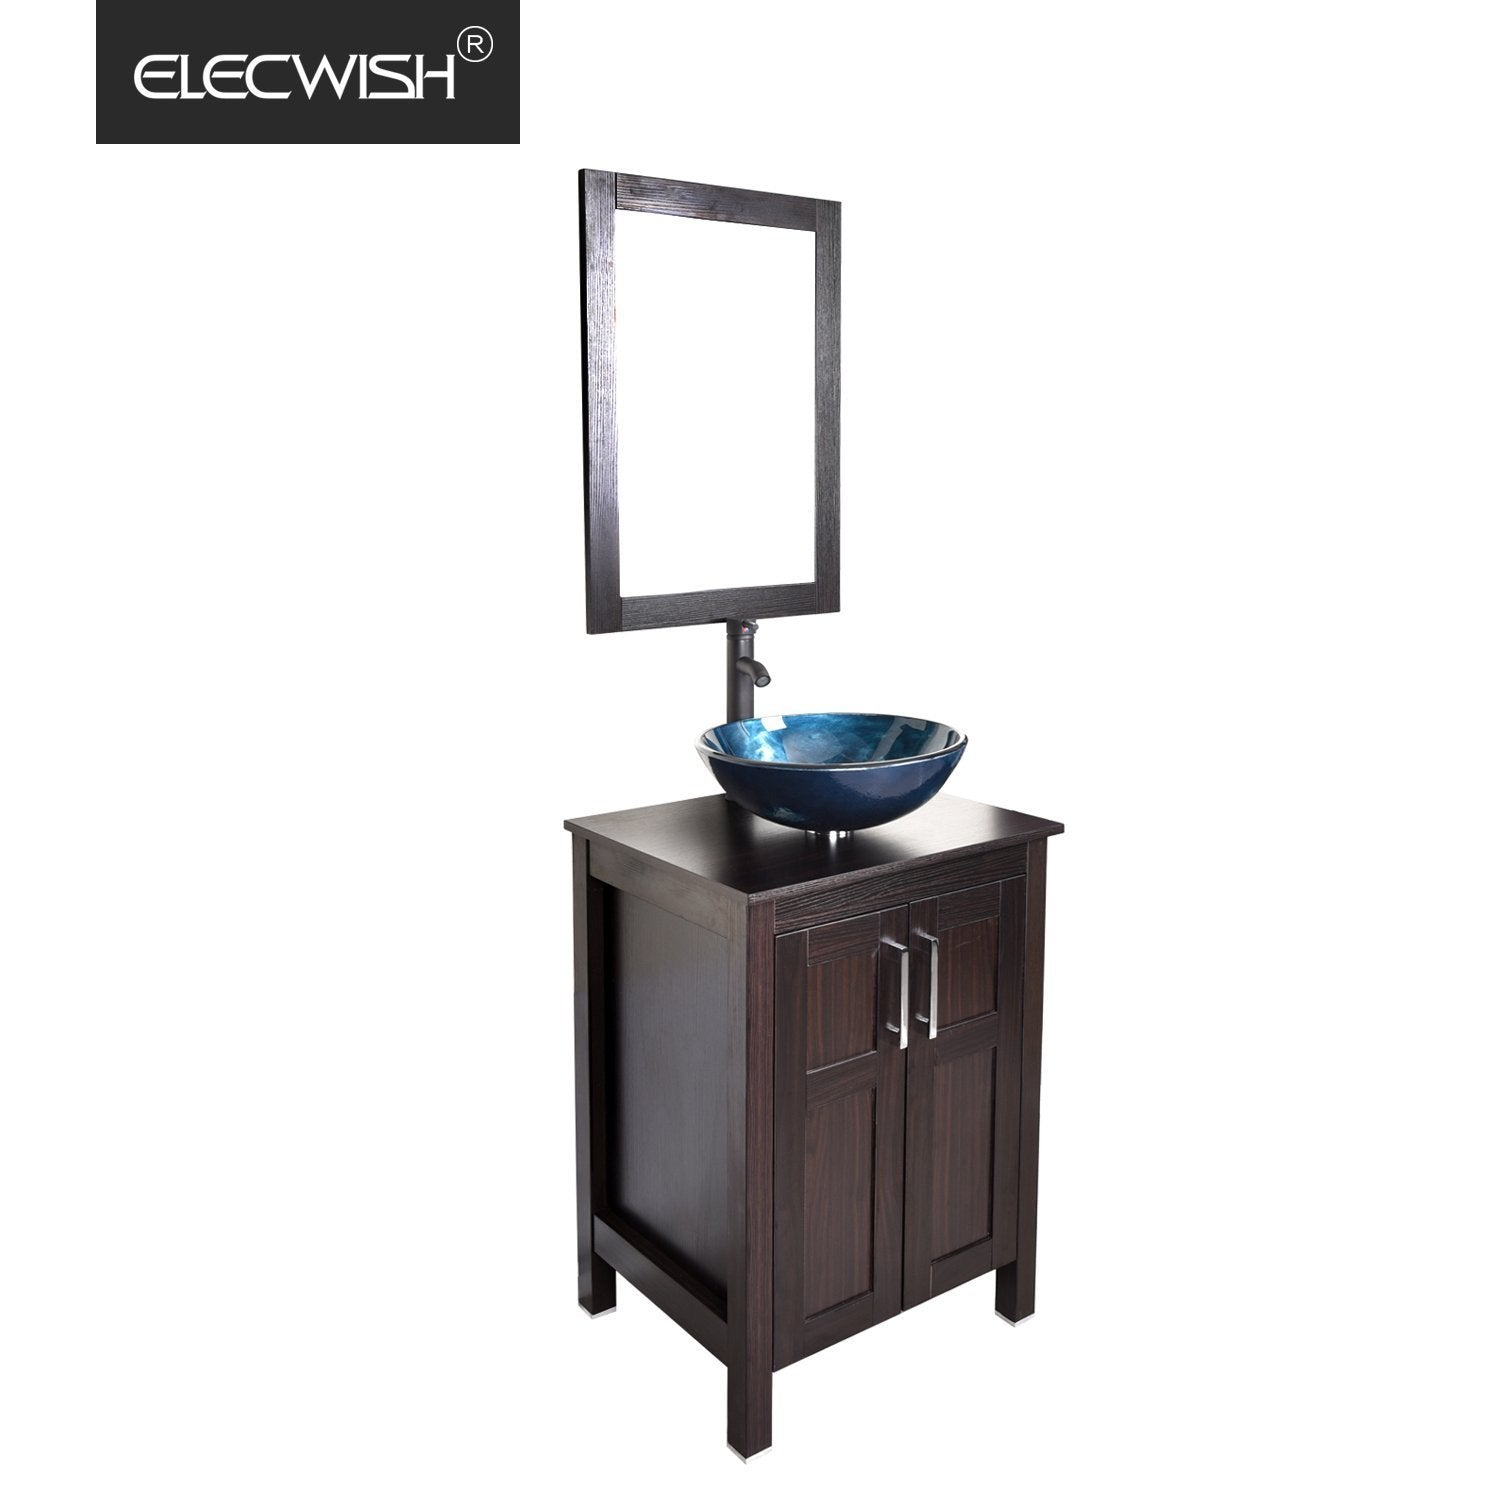 Top rated elecwish usba20090 usba20077 bathroom vanity and sink combo stand cabinet and tempered blue glass vessel sink orb faucet and pop up drain mirror mounting ring